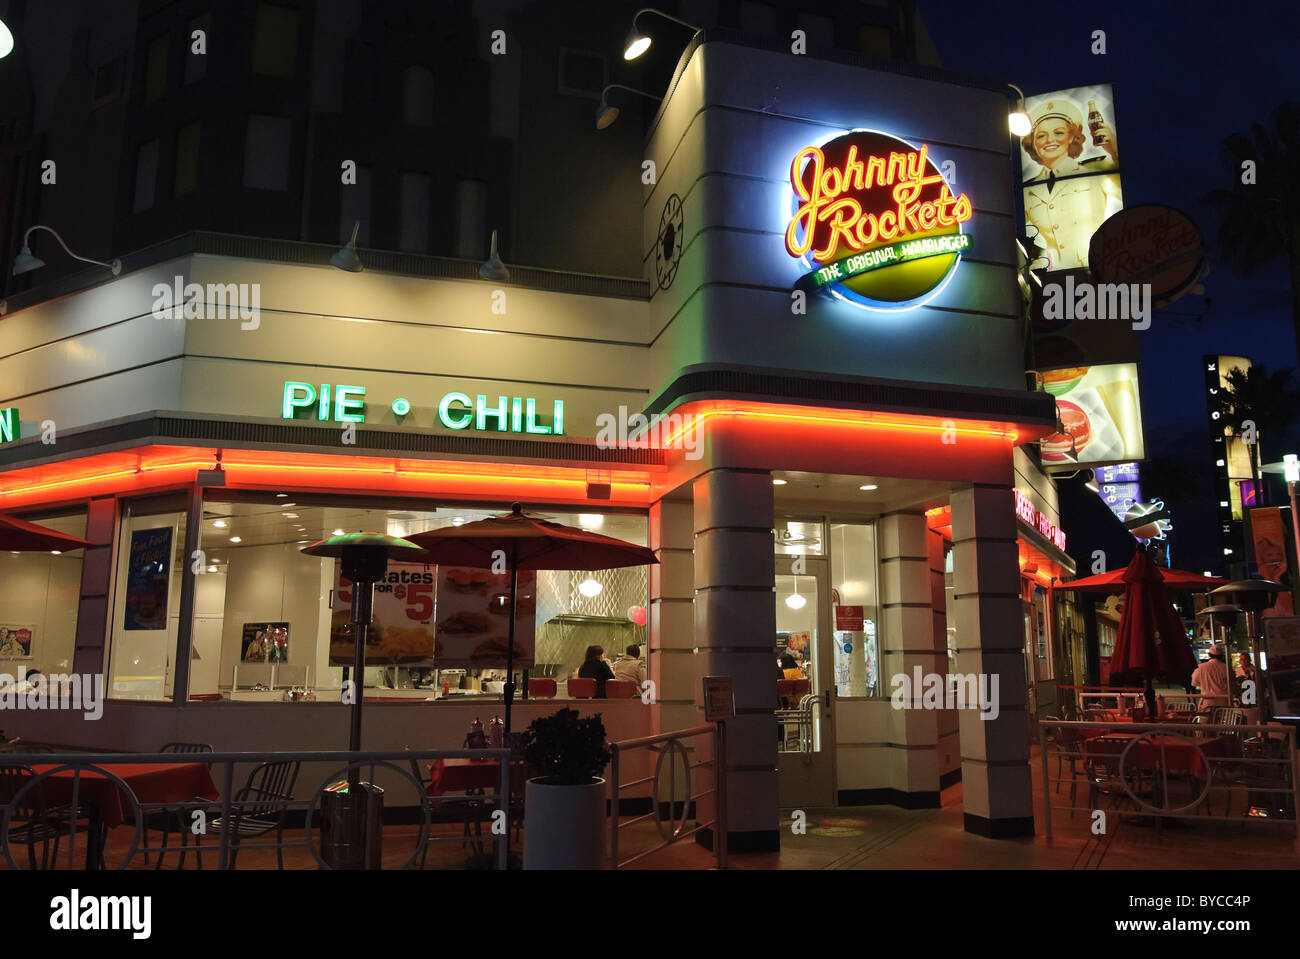 Johnny Rockets restaurant at night. - Stock Image